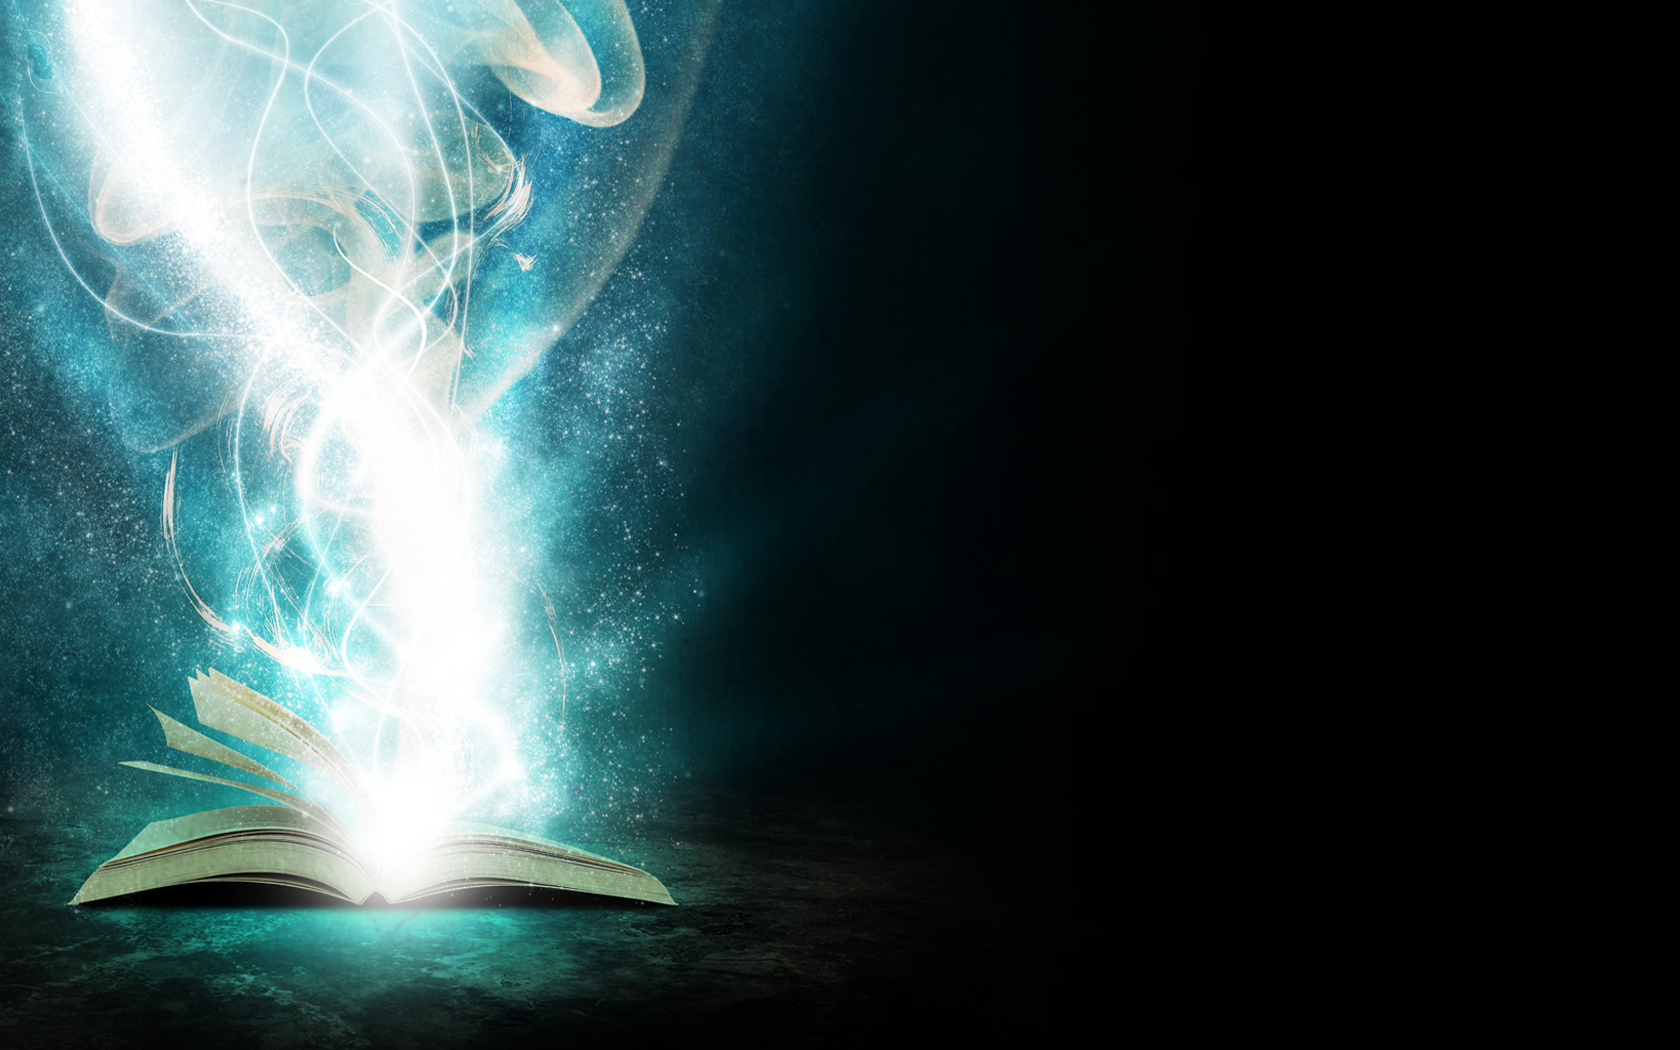 In Gallery: 28 Mystical HD Wallpapers   Backgrounds, Z.XSW Wallpapers